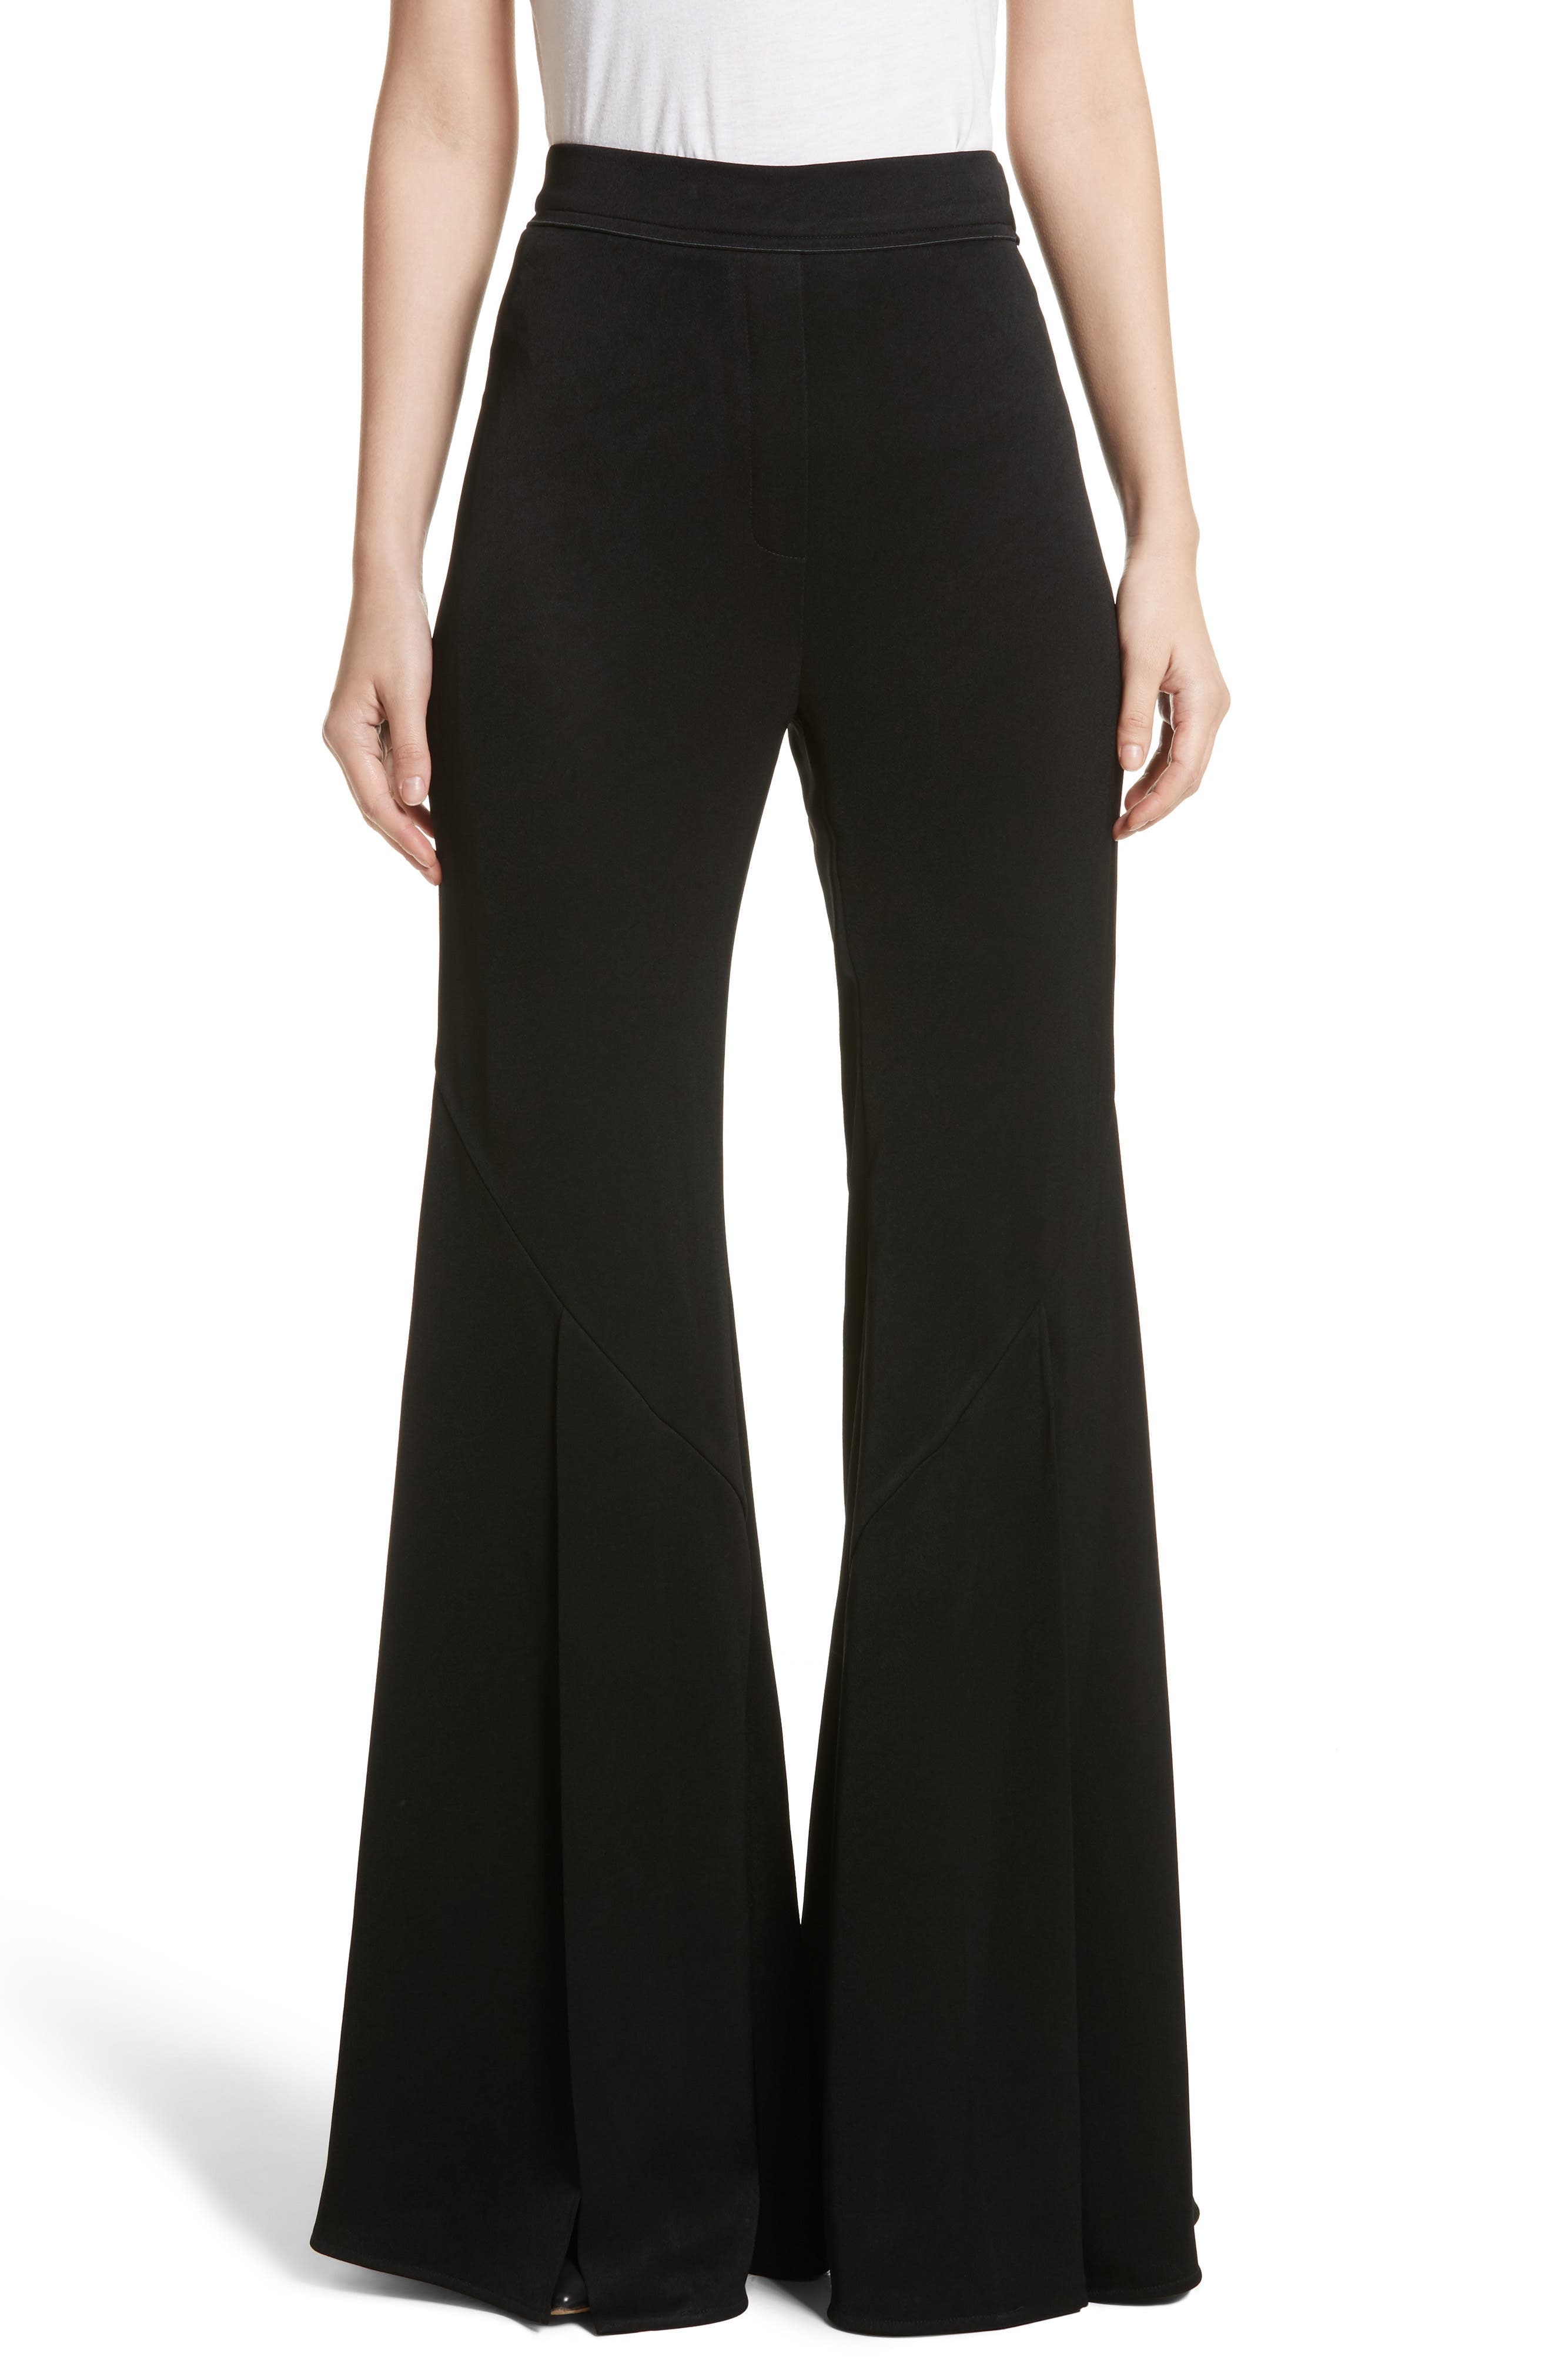 Higher & Higher Wide Flare Leg Pants,                             Main thumbnail 1, color,                             001